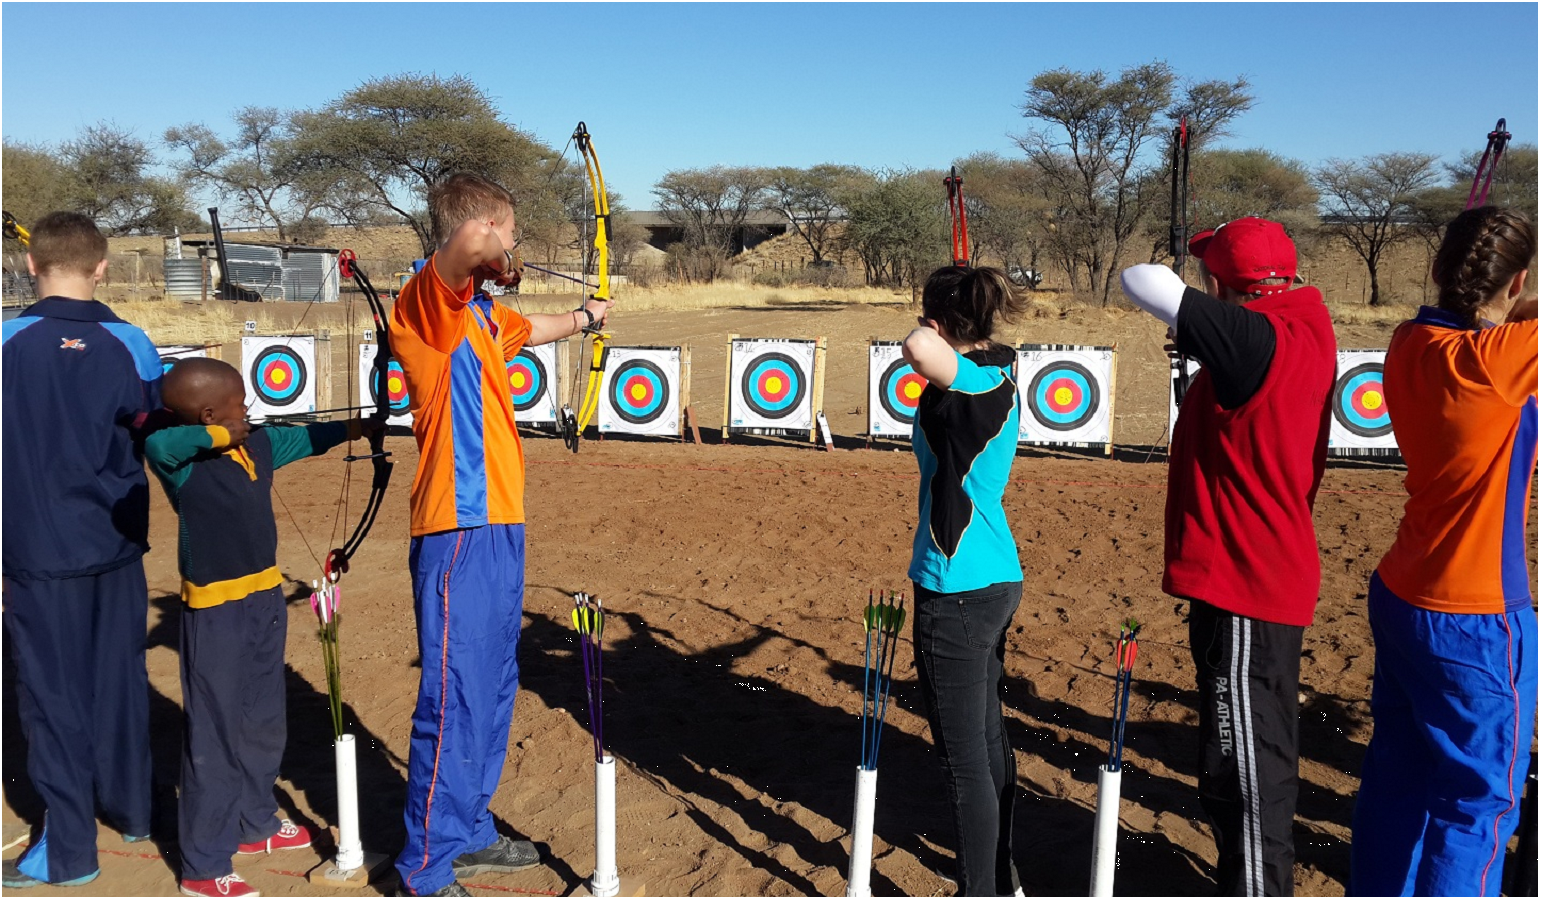 New record set at archery competition